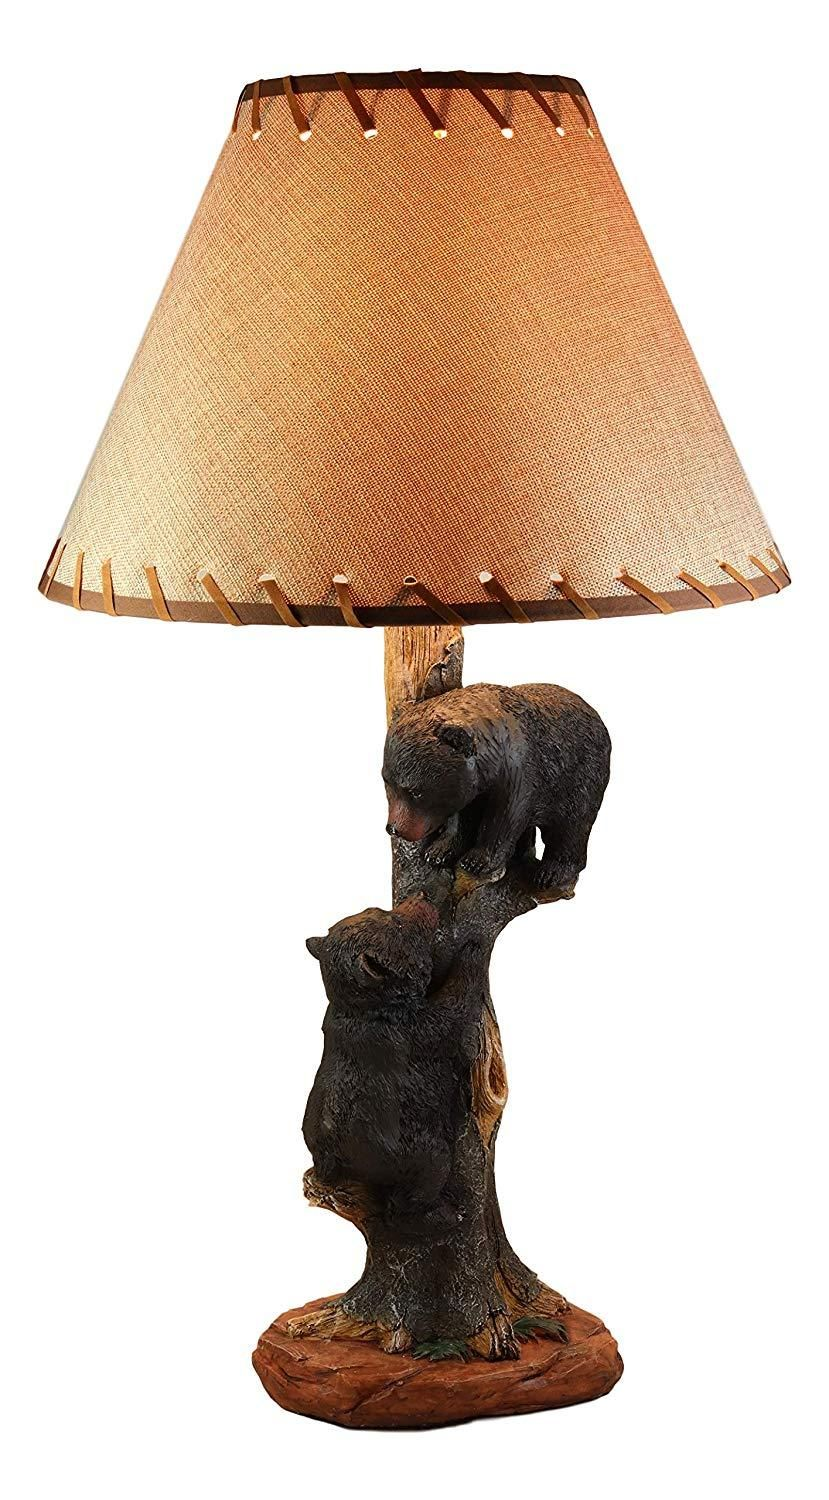 Ebros Helping Hand Whimsical Black Bear Cubs Climbing Tree Table Lamp Statue with Burlap Shade 24High Wildlife Rustic Cabin Lodge Decor Forest Bears Family Desktop Lamps #pictureplacemeant